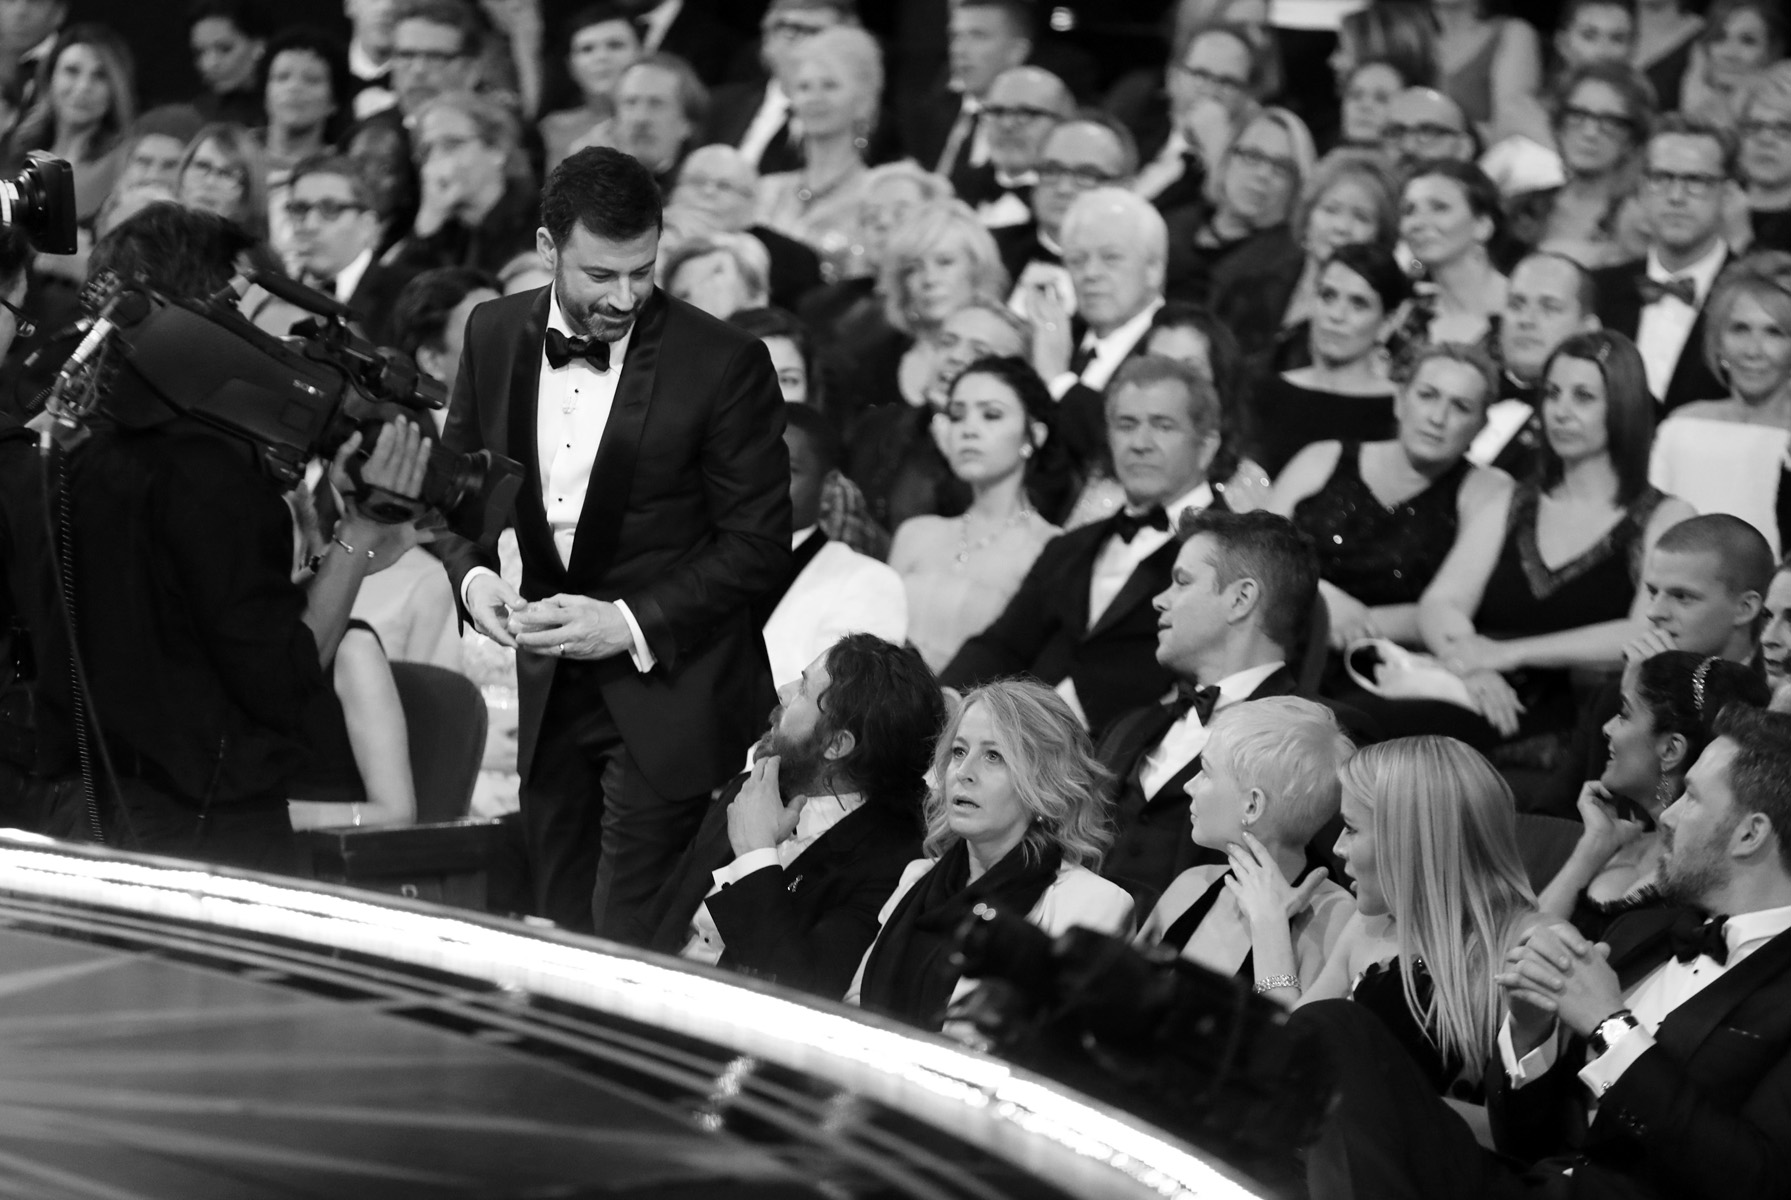 Jimmy Kimmel exits the audience as he heads for the the stage as the award for best picture is announced at the Oscars on Sunday, Feb. 26, 2017, at the Dolby Theatre in Los Angeles. (Photo by Matt Sayles/Invision/AP)